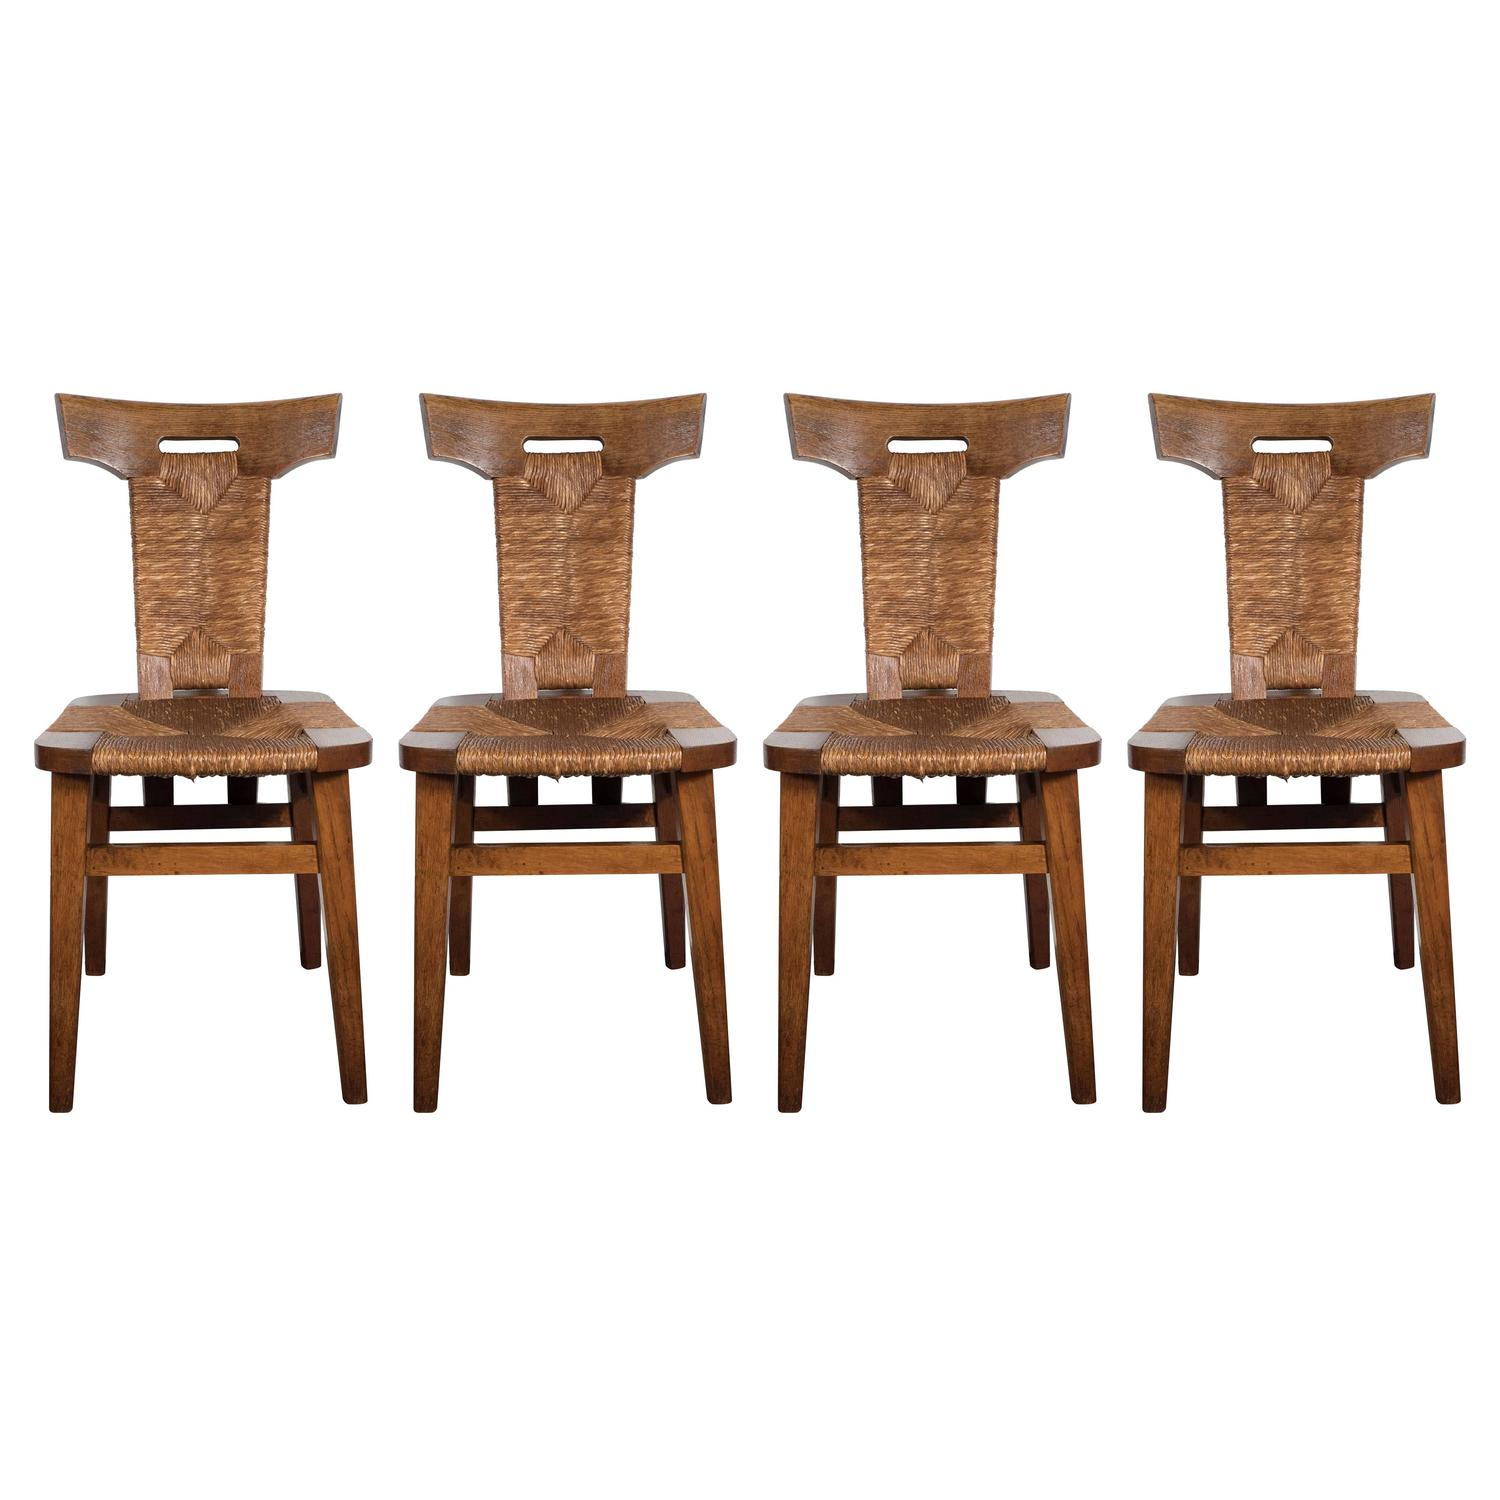 German Dining Room Chairs - 59 For Sale at 1stdibs